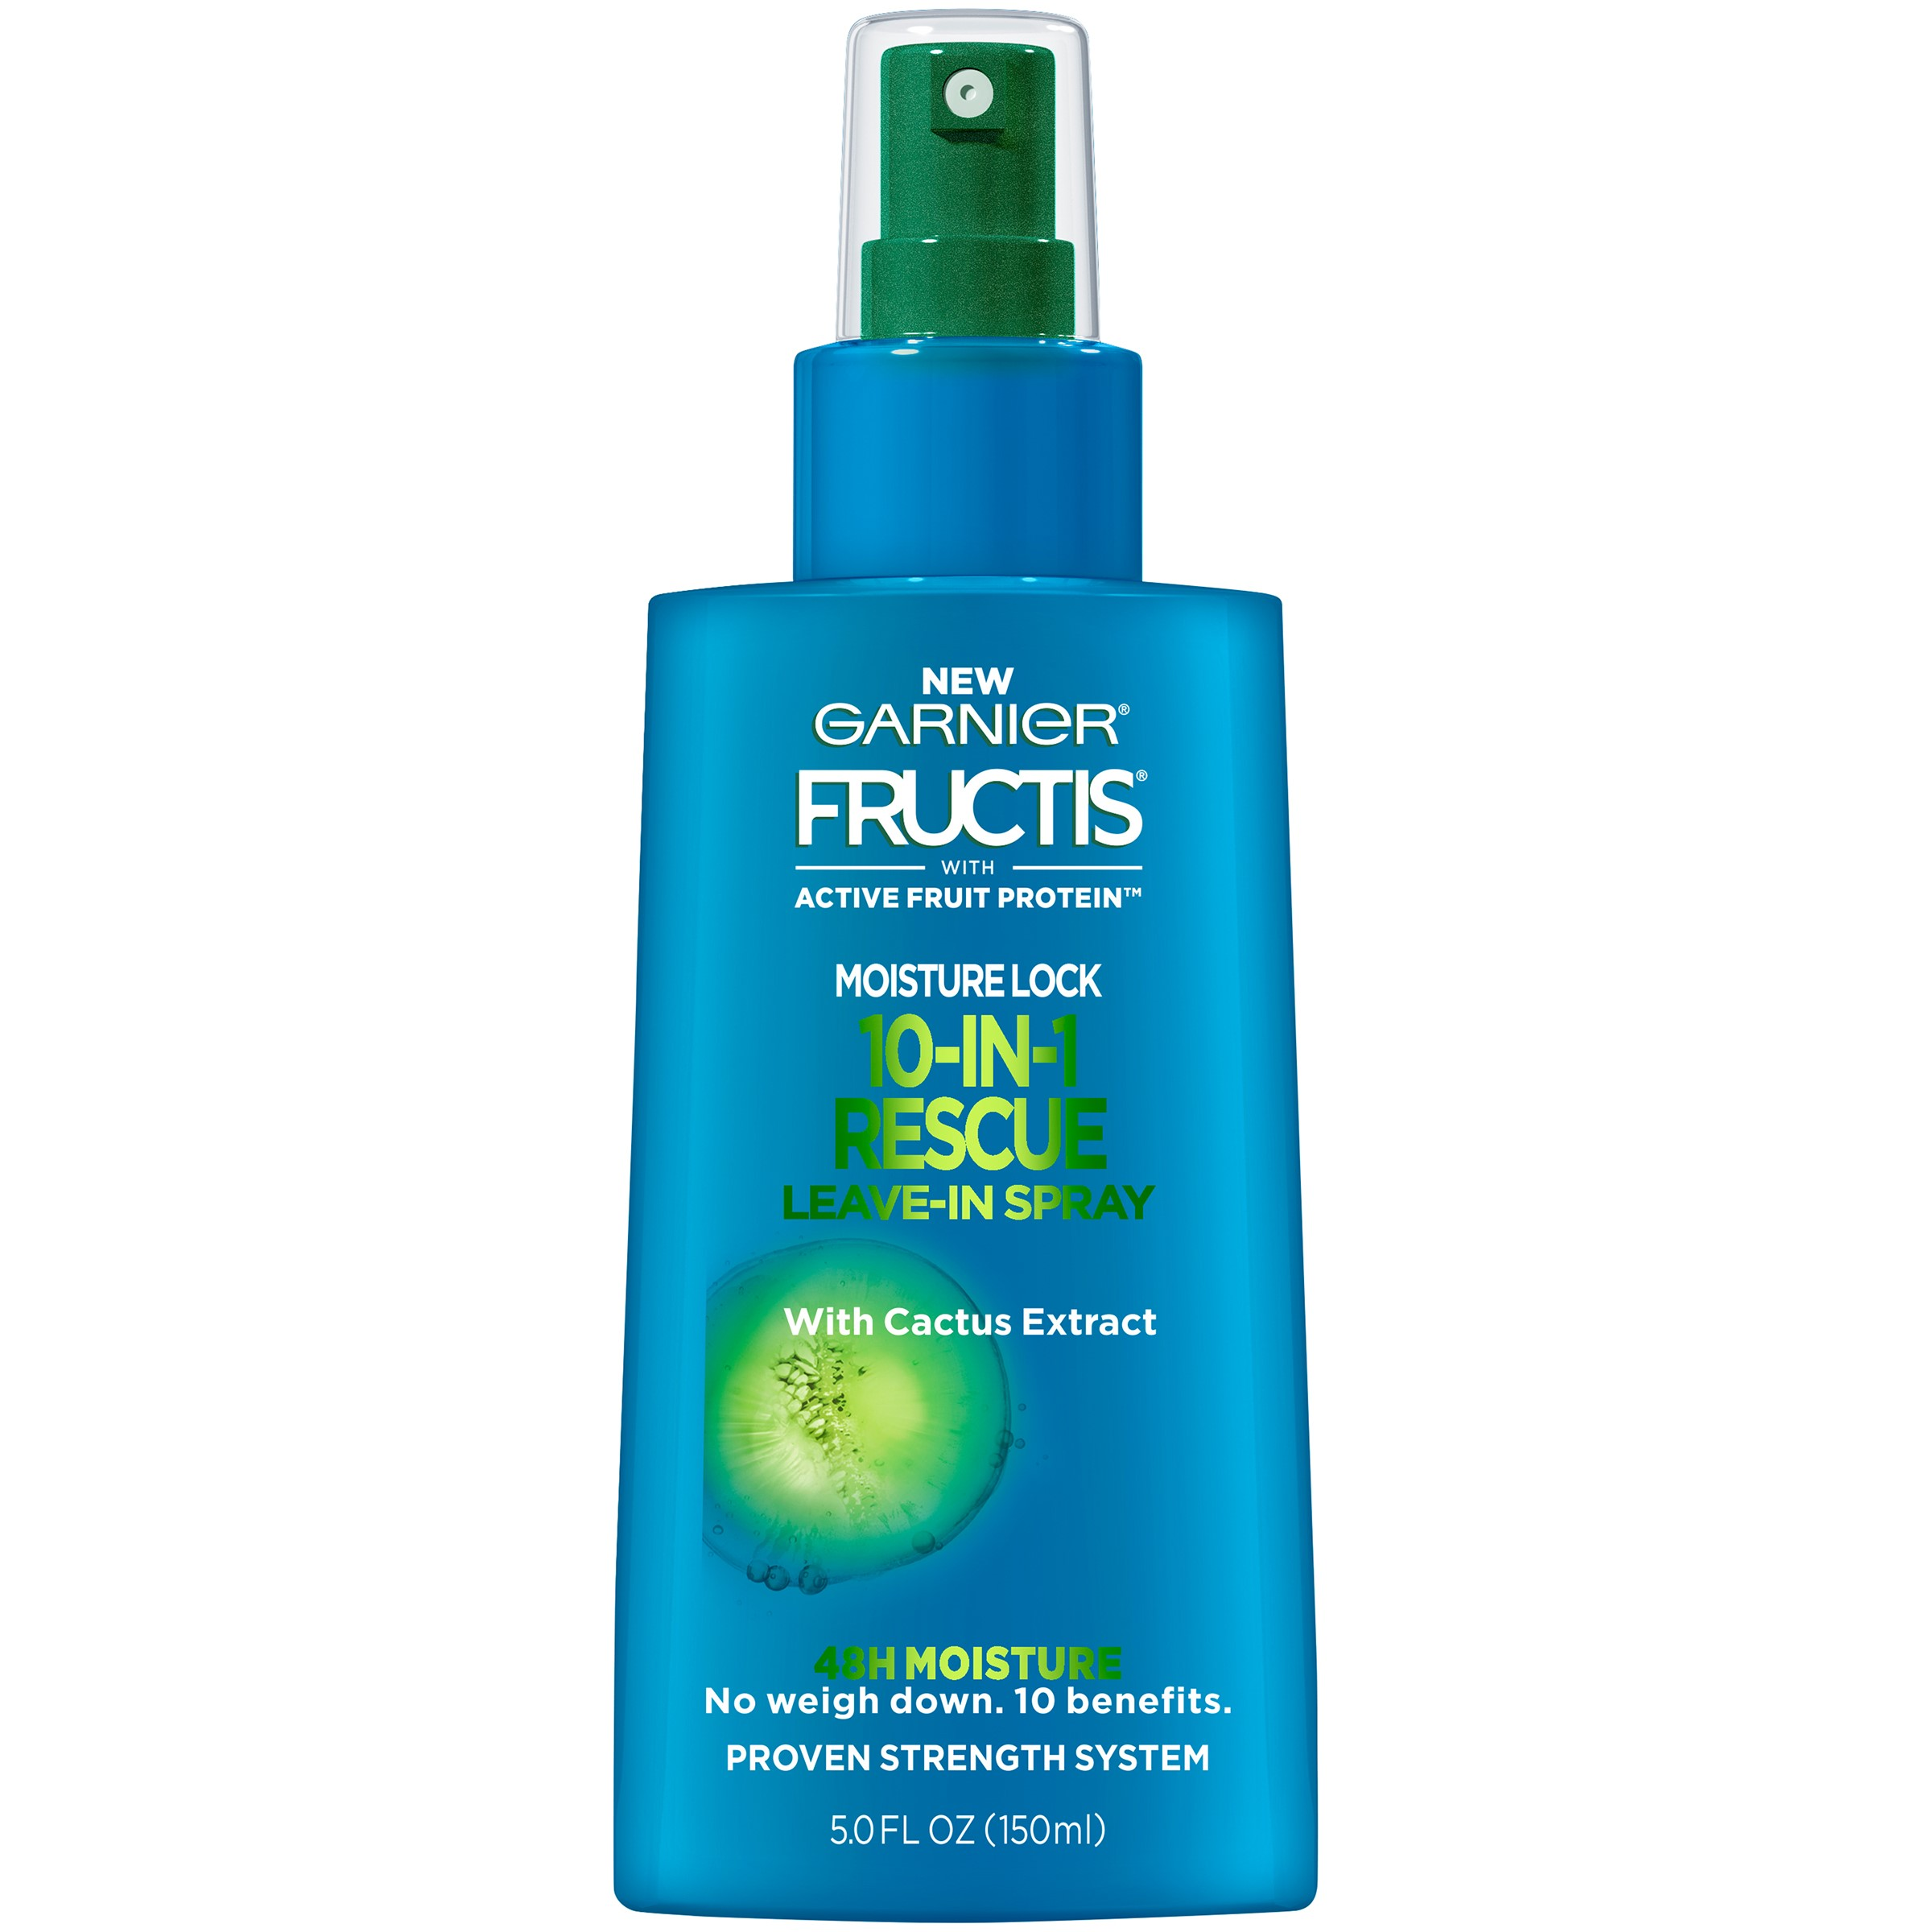 Garnier Fructis Moisture Lock 10-in-1 Rescue Leave-In Spray, 5 Fl Oz